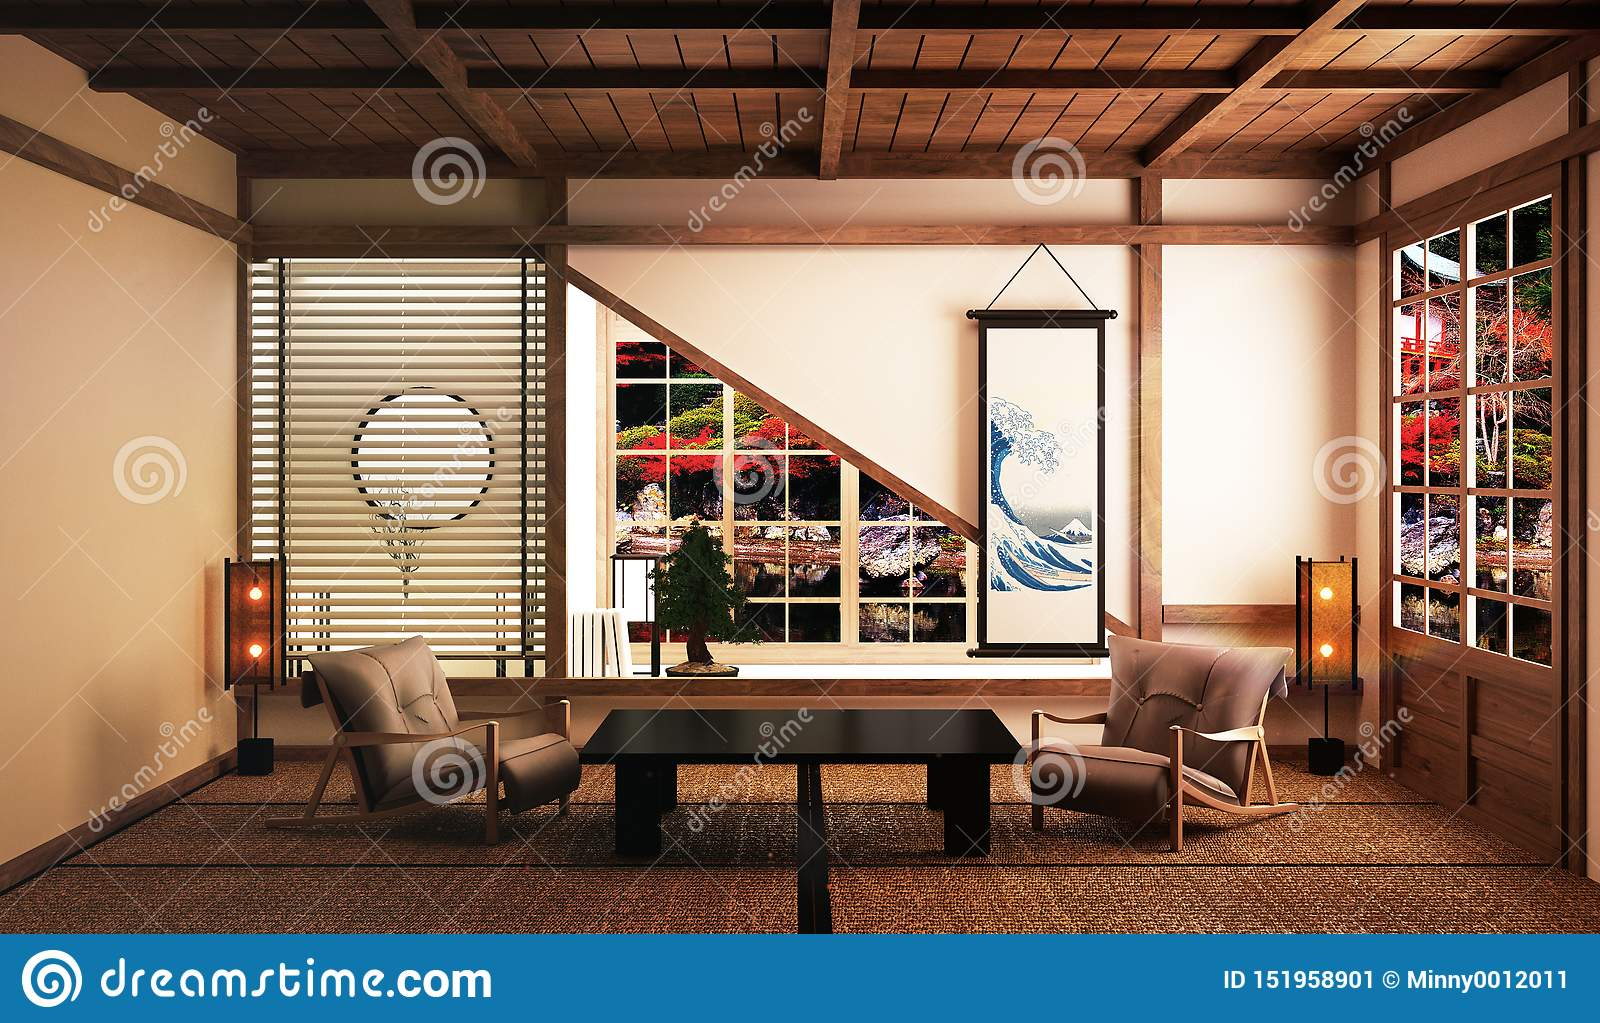 Beautiful Living Room With Low Table,arm Chairs,bonsai Tree ...